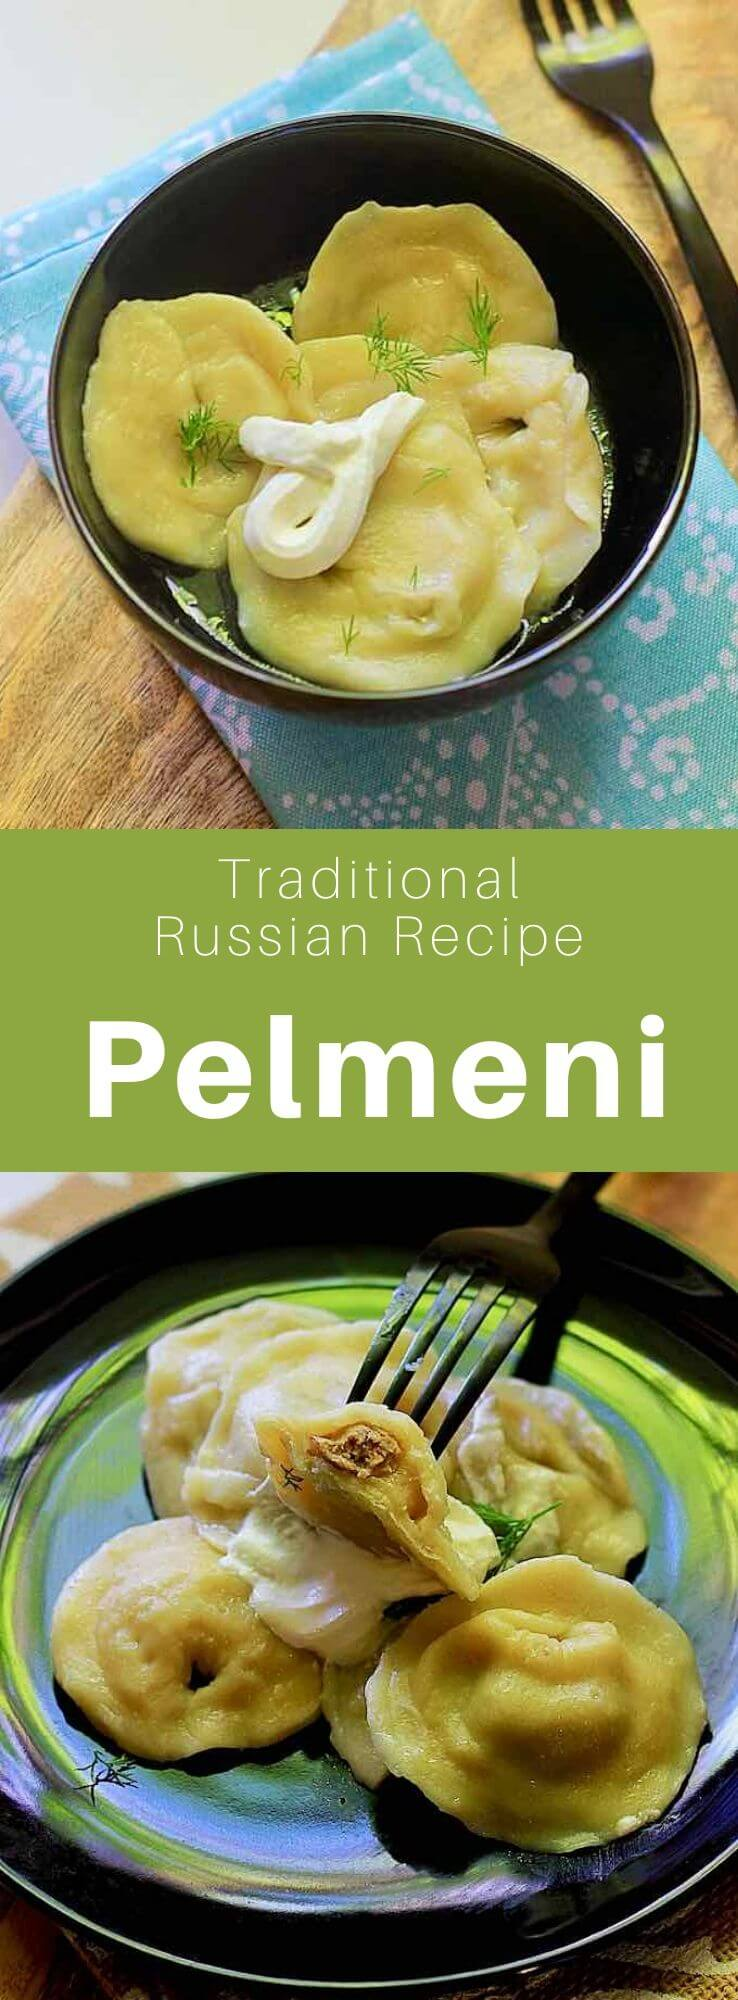 Pelmeni (пельмени) is a traditional Russian dish originating from the Urals, that is made from a kind of ravioli stuffed with ground meat or fish. #Russia #Russian #RussianRecipe #RussianFood #WorldCuisine #196flavors